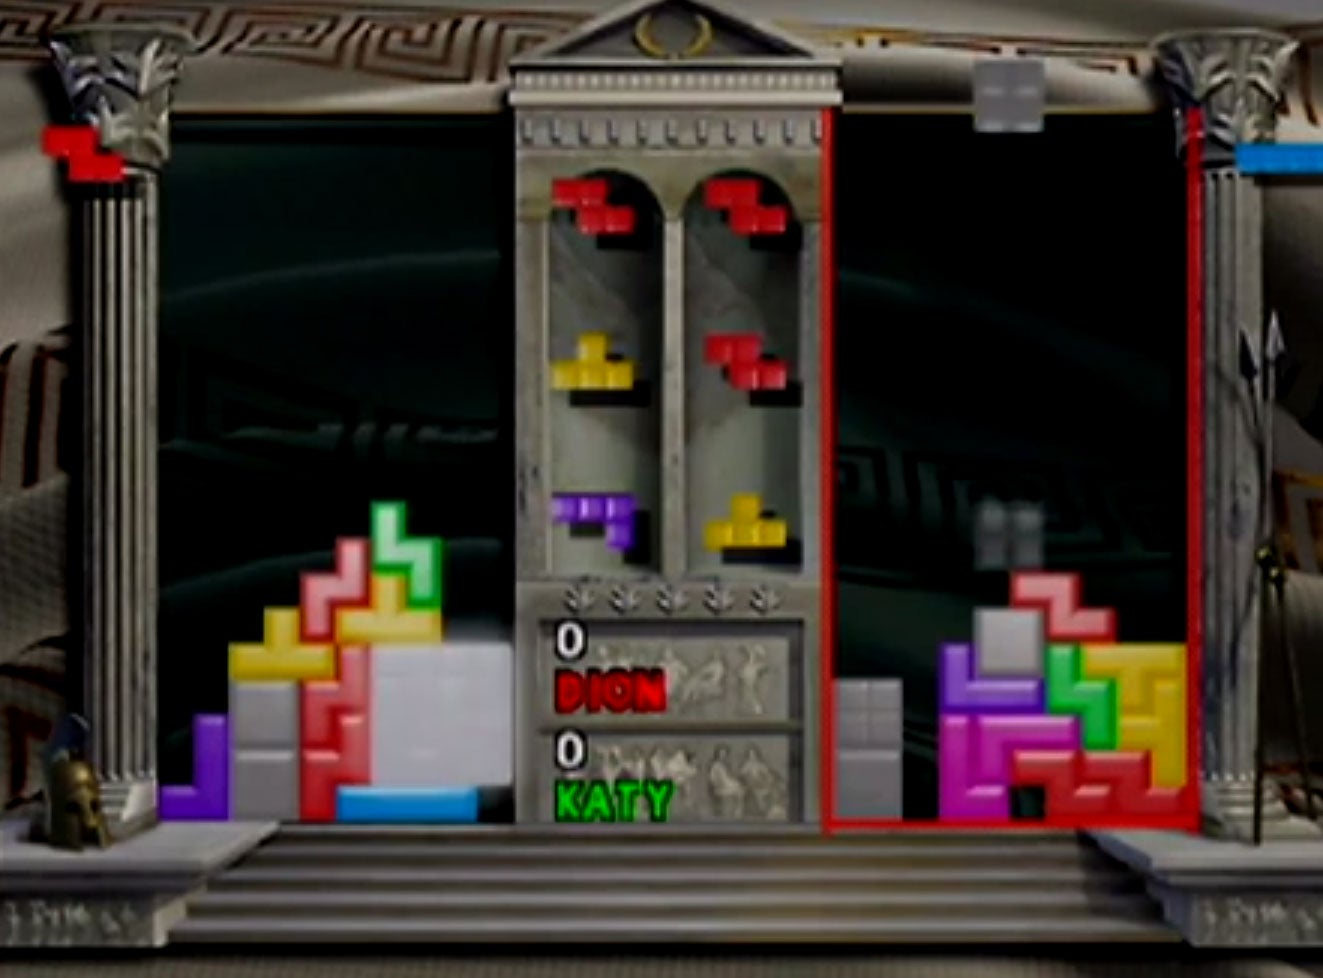 Tetris can reduce risk of PTSD, scientists say   The Independent